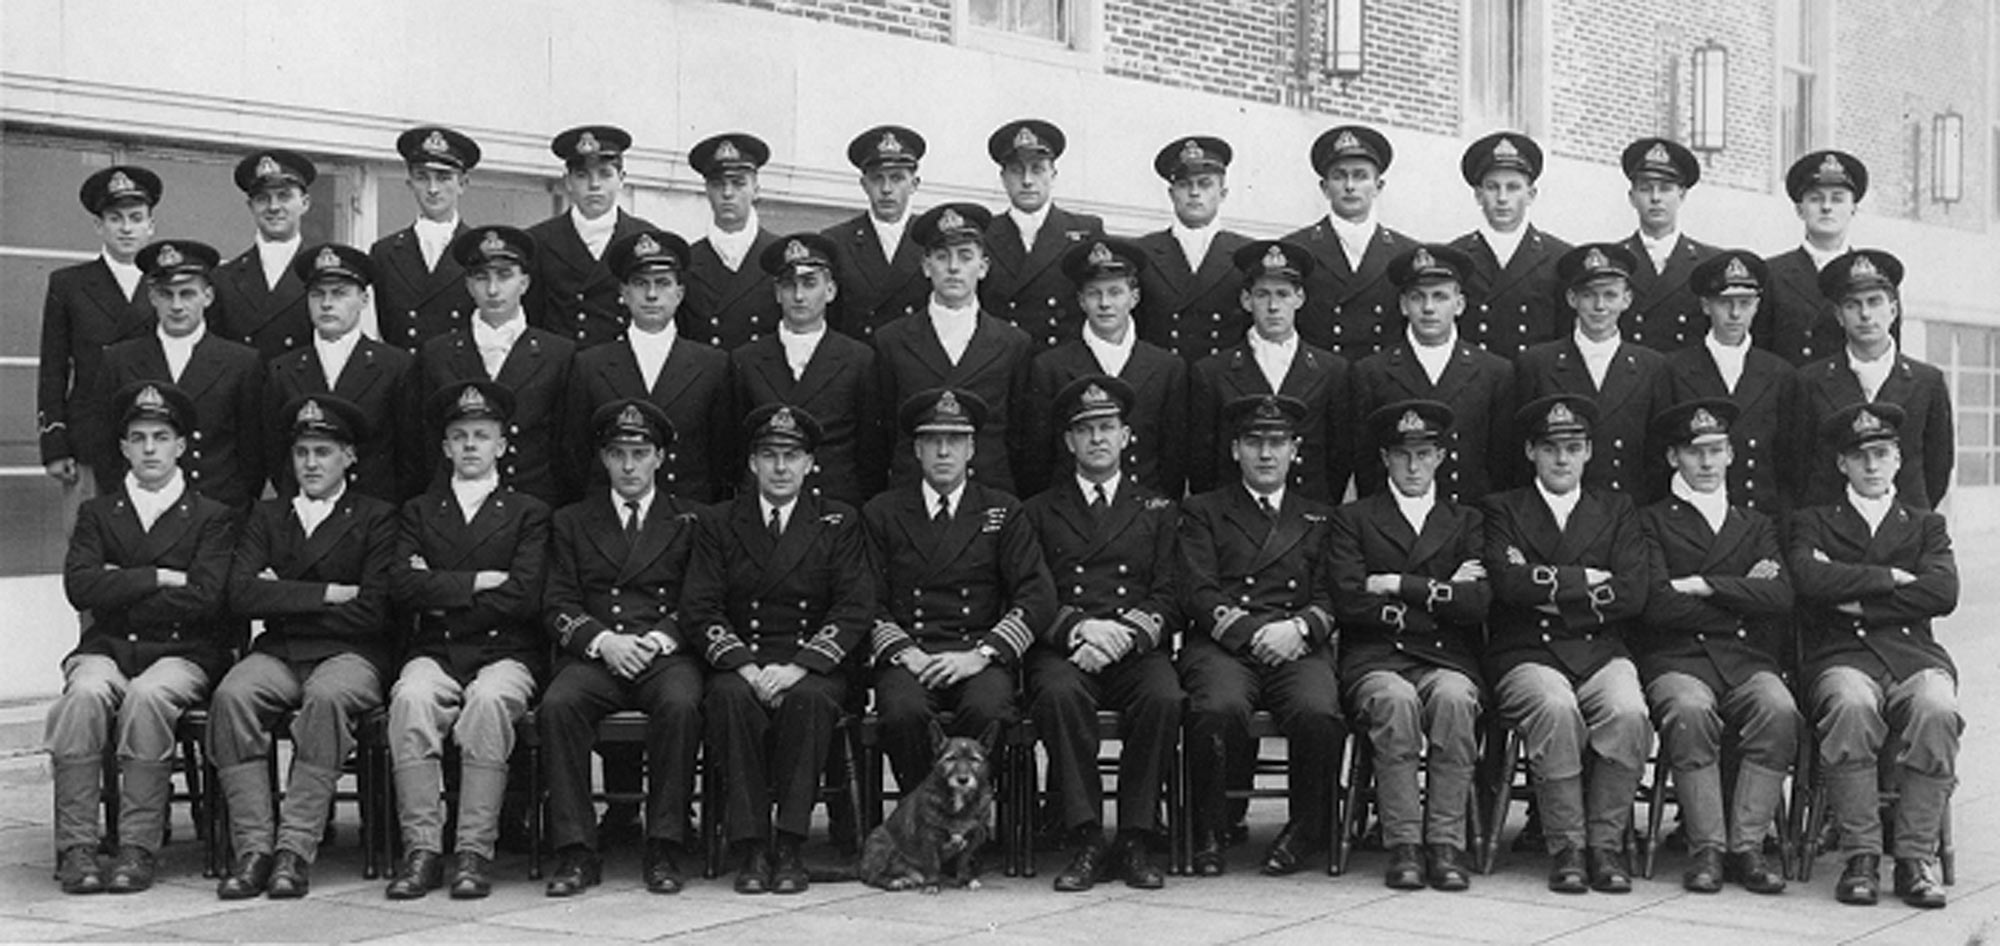 Captain Cuthbert Coppinger DSC RN the commanding officer of HMS King Alfred, the RNVR training station, in the middle of the front row with his dog training staff and trainees in 1945